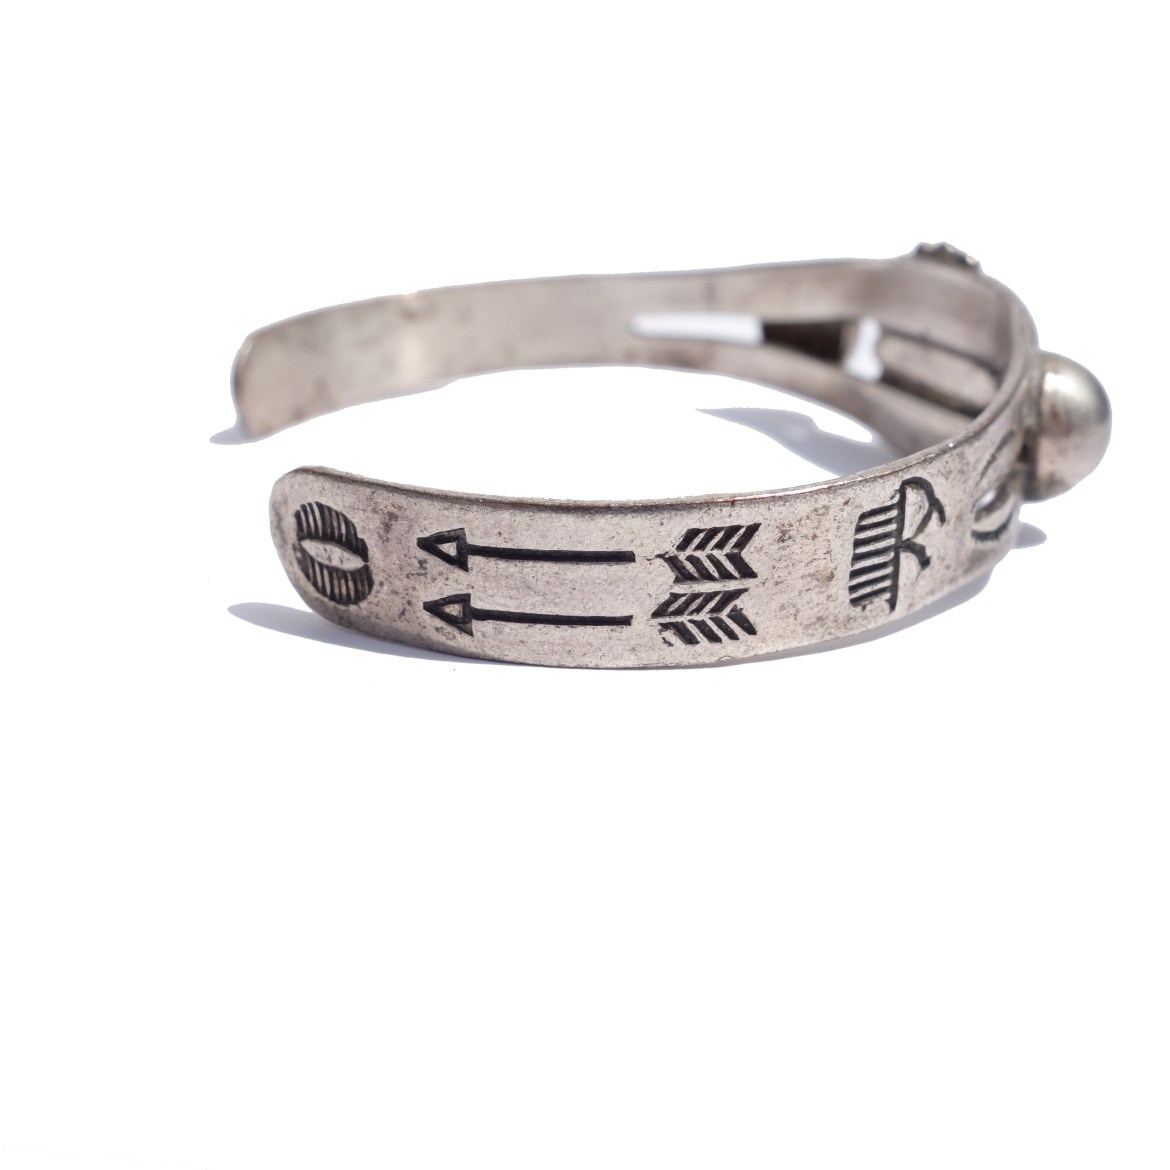 Vintage Navajo Bangle vintage styling blog